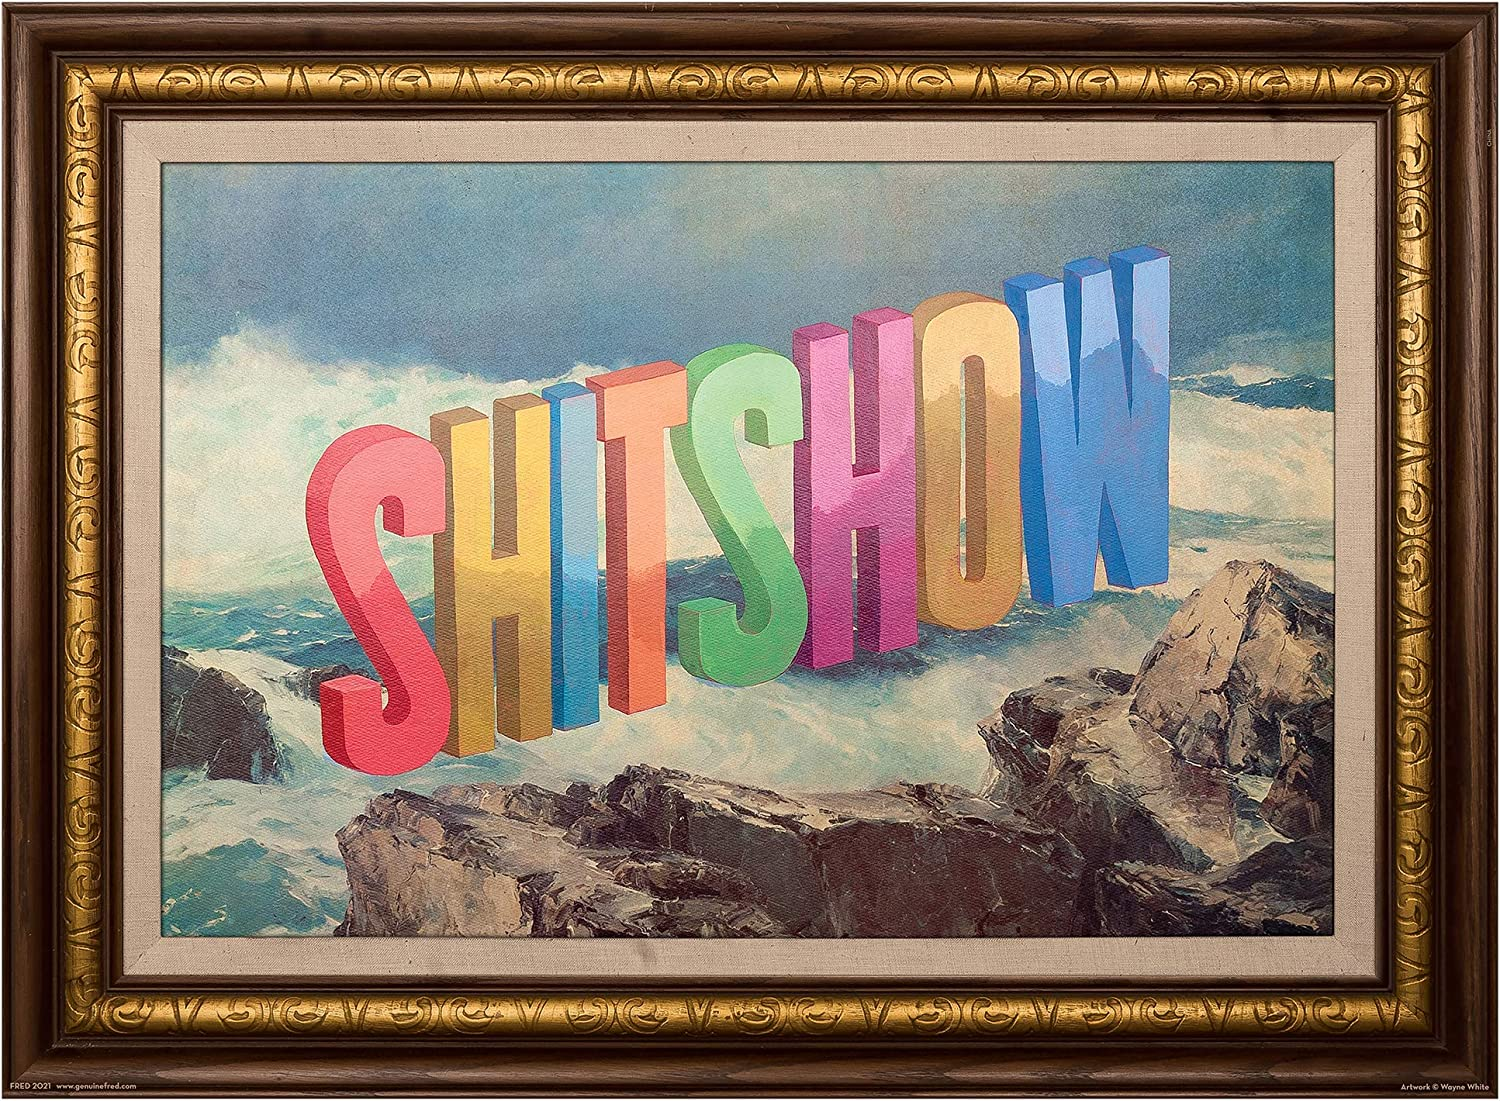 Shitshow by Wayne White 500 Piece Puzzle